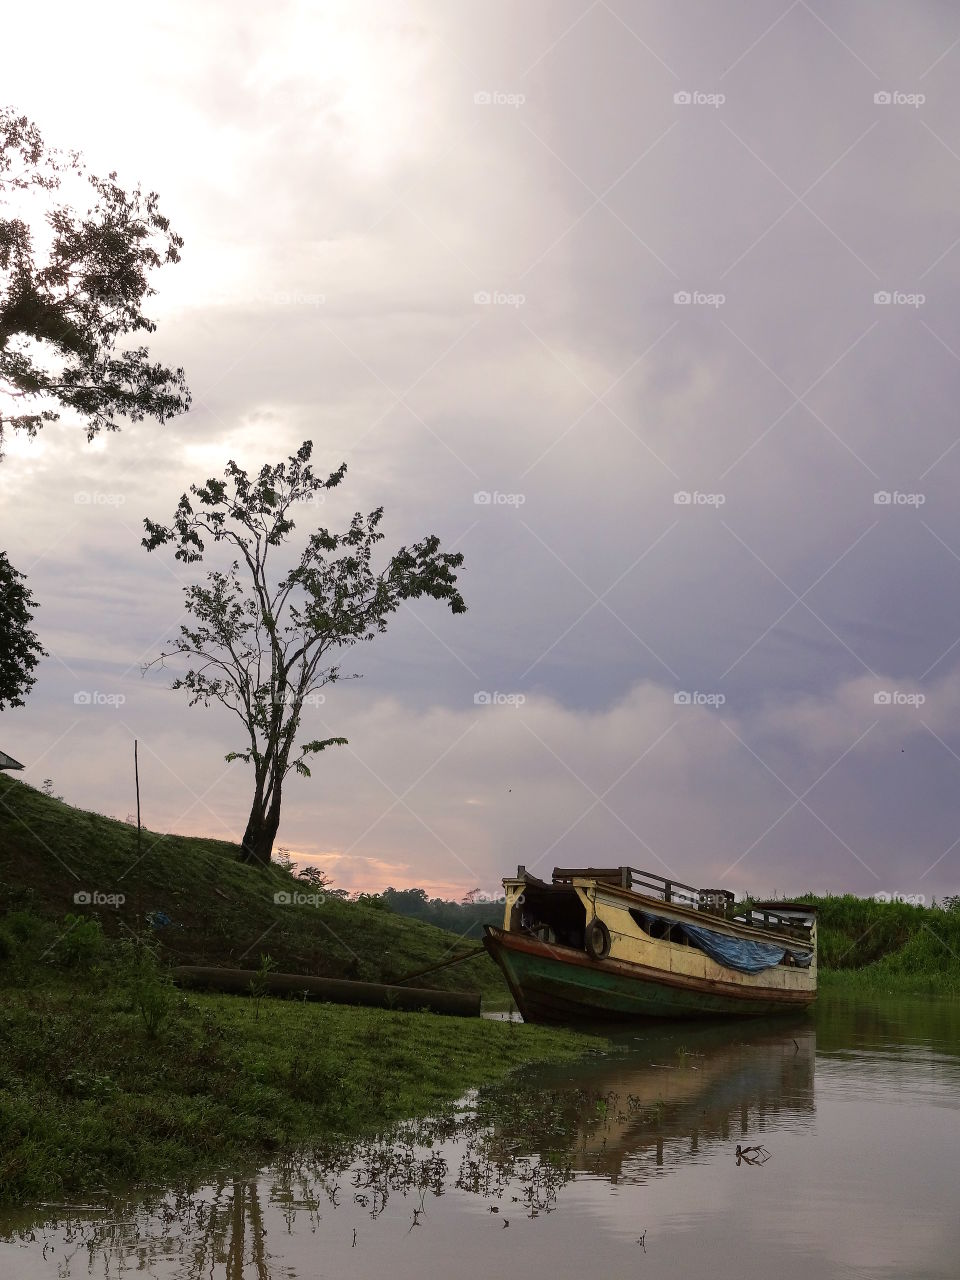 Decrepit house boat, amazon rainforest, 30 miles from Iquitos Peru. Purple stormy foreboding sky with orange sunset. Gloomy scene.